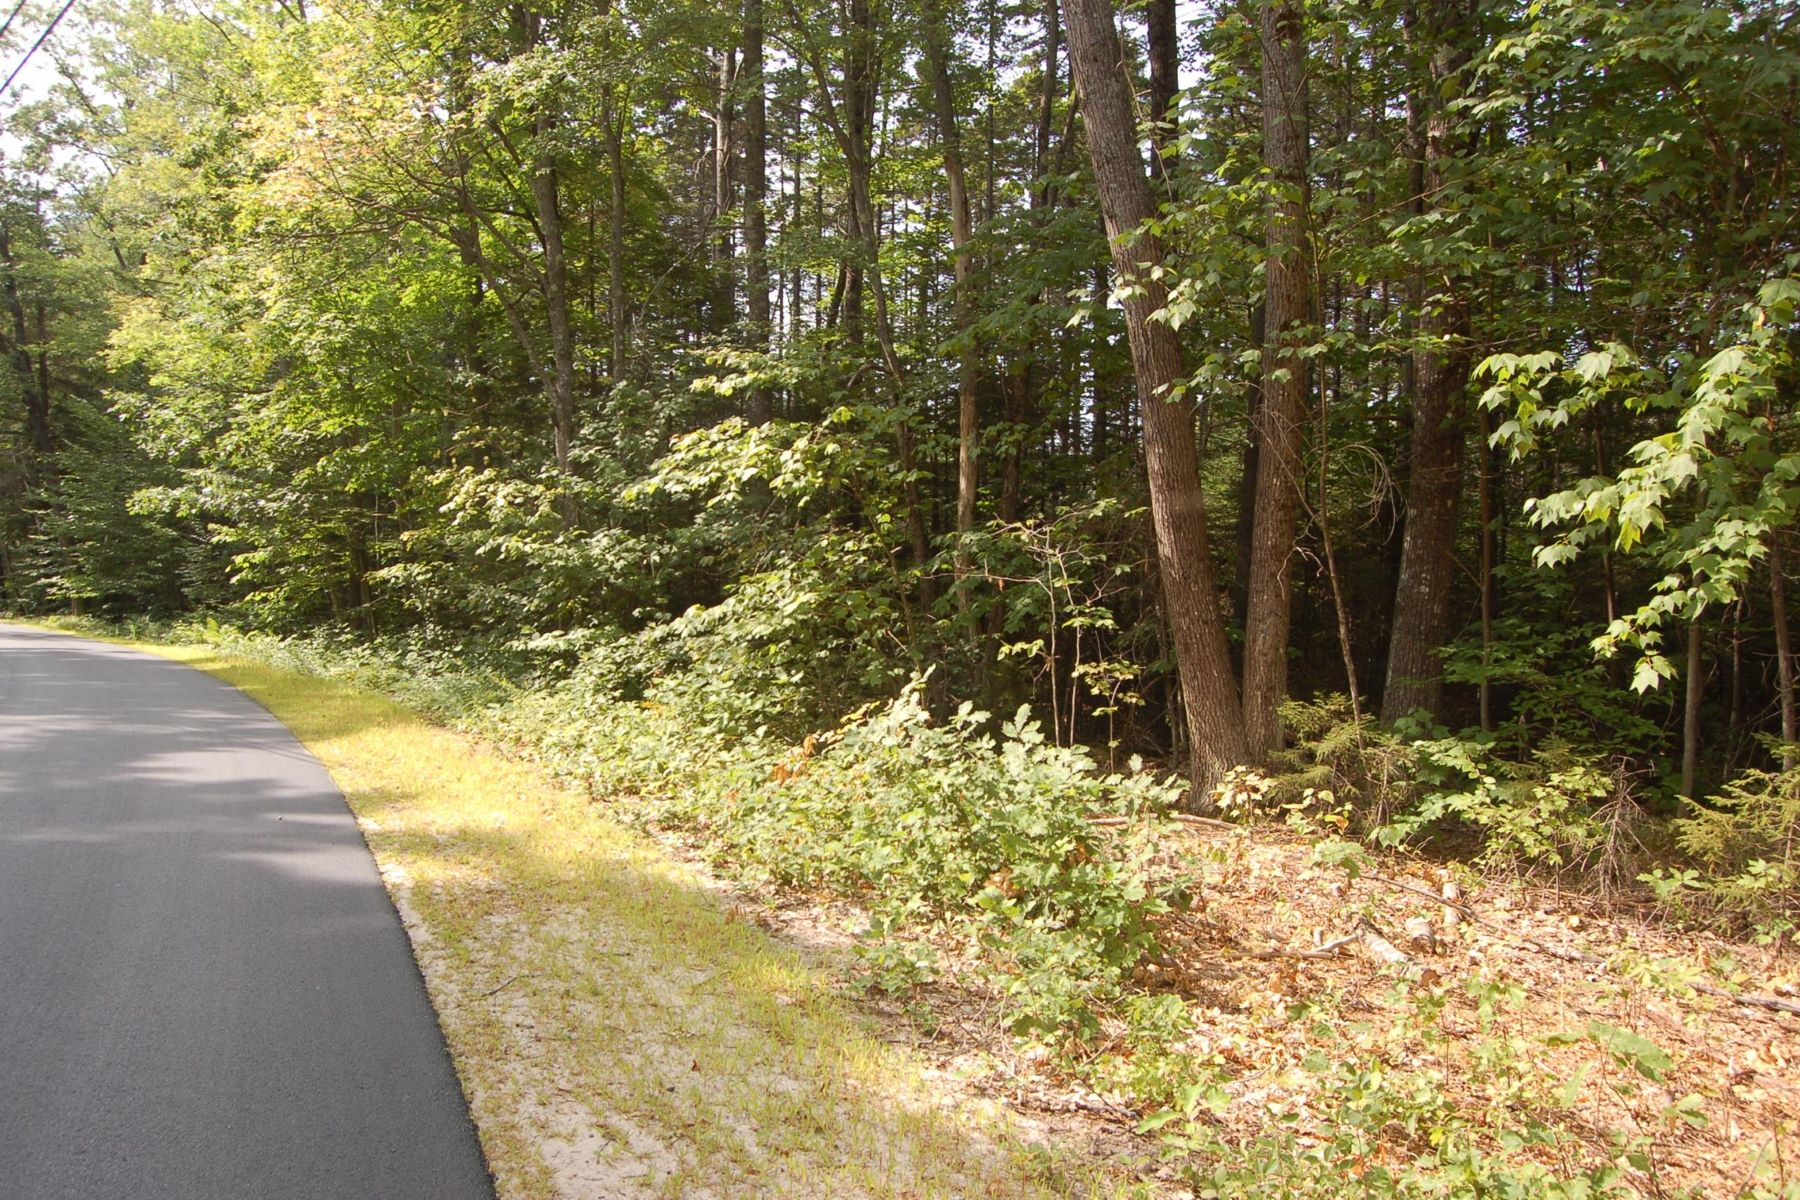 أراضي للـ Sale في Level Building Lot 00 Chalk Pond, Newbury, New Hampshire, 03255 United States